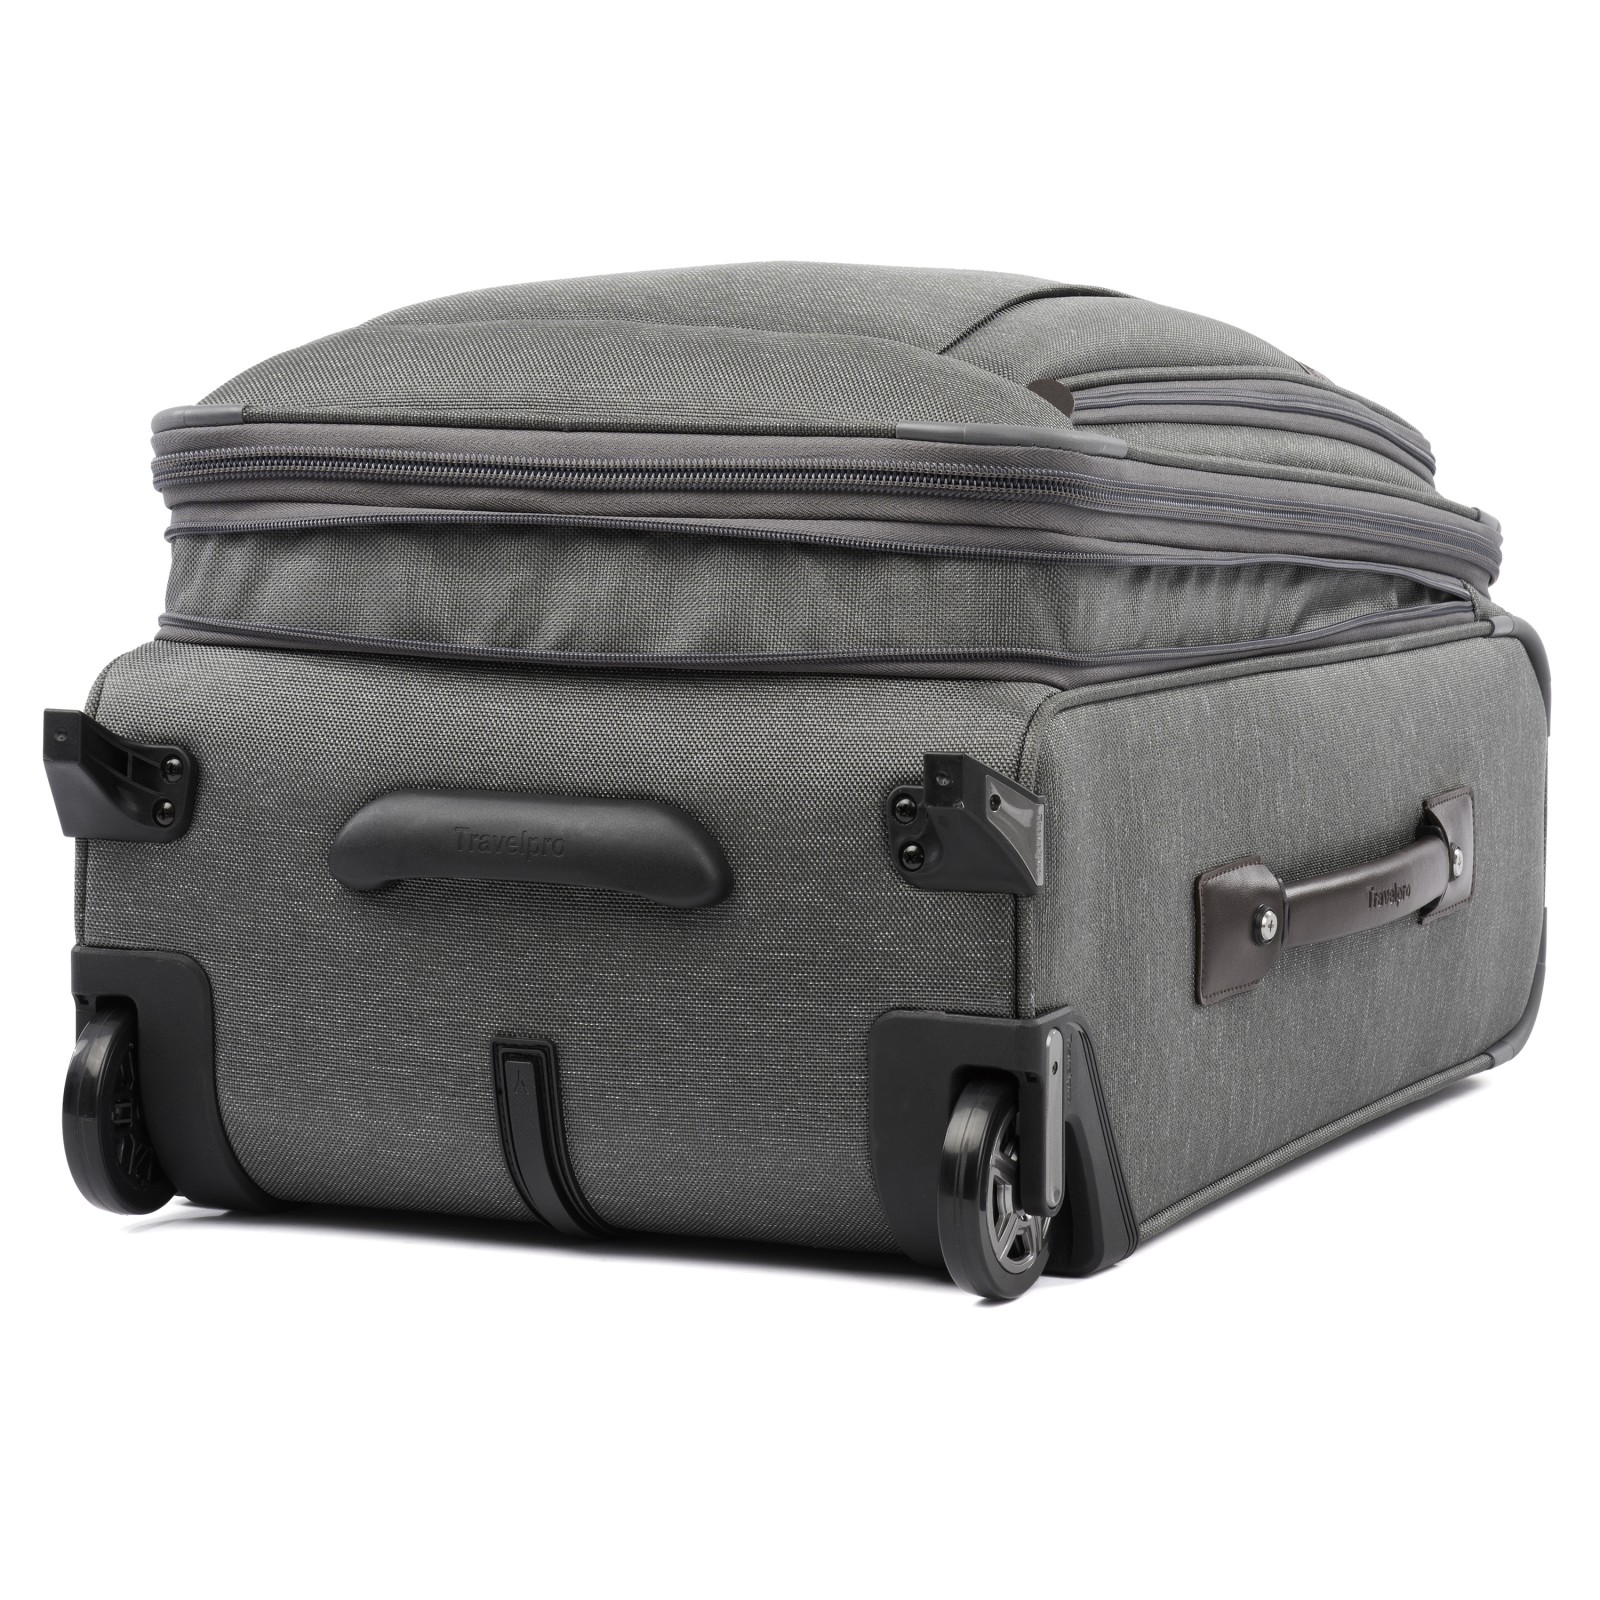 Travelpro Platinum Elite 22 Quot Carry On Expandable